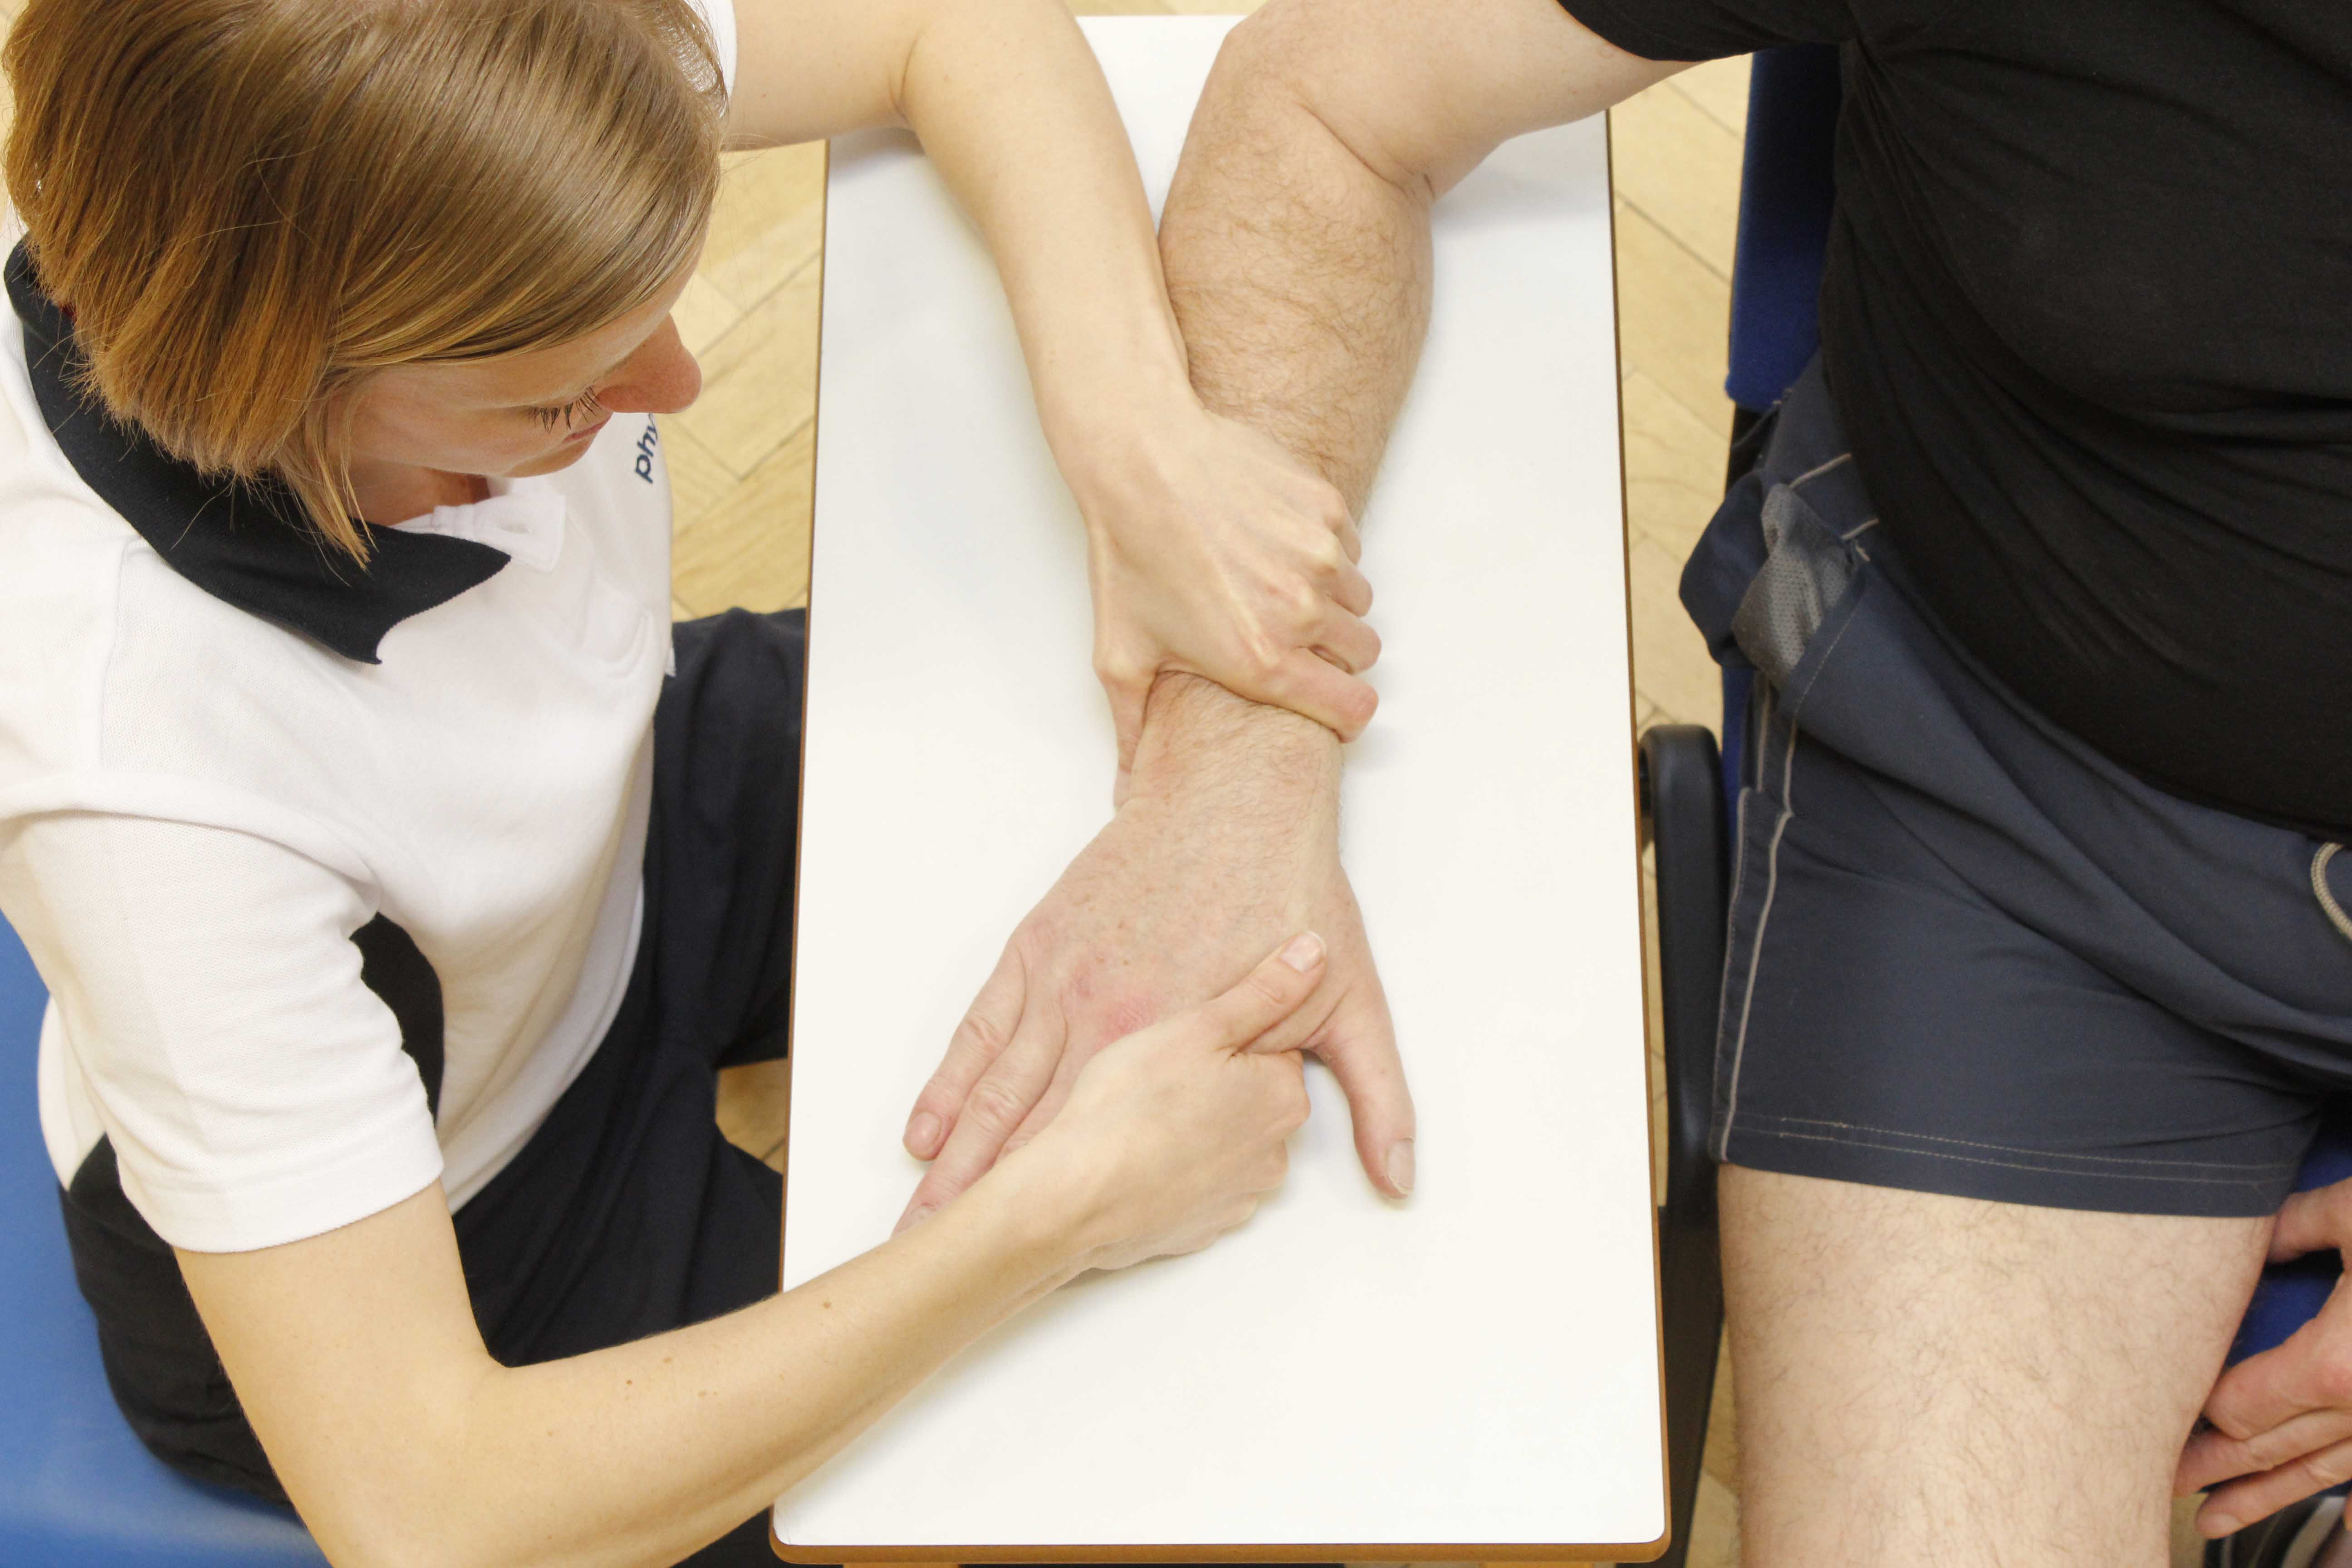 Mobilisation of the wrist by an experienced physiotherapist